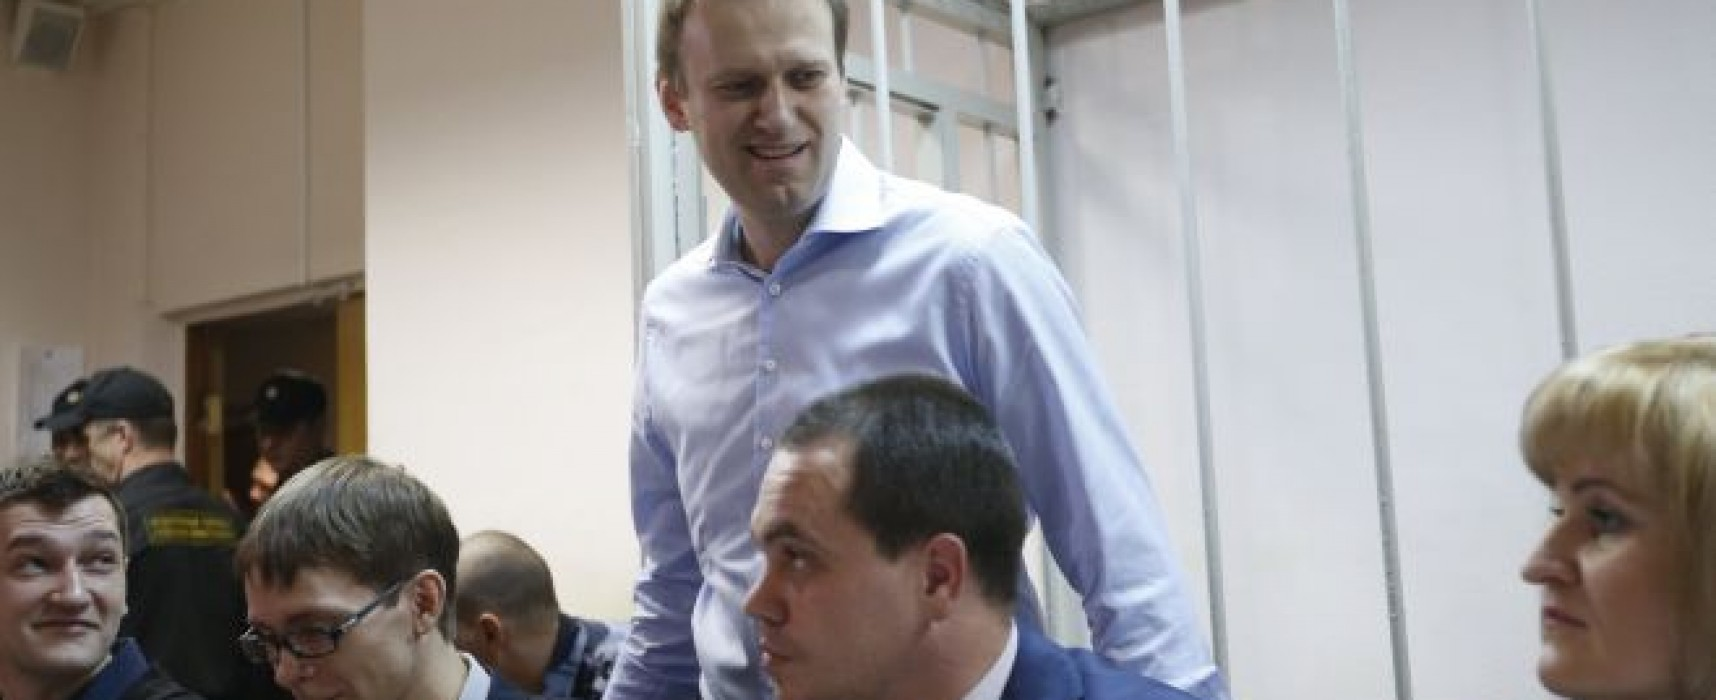 Prominent Russians Say Duped Into Speaking in Anti-Navalny Video